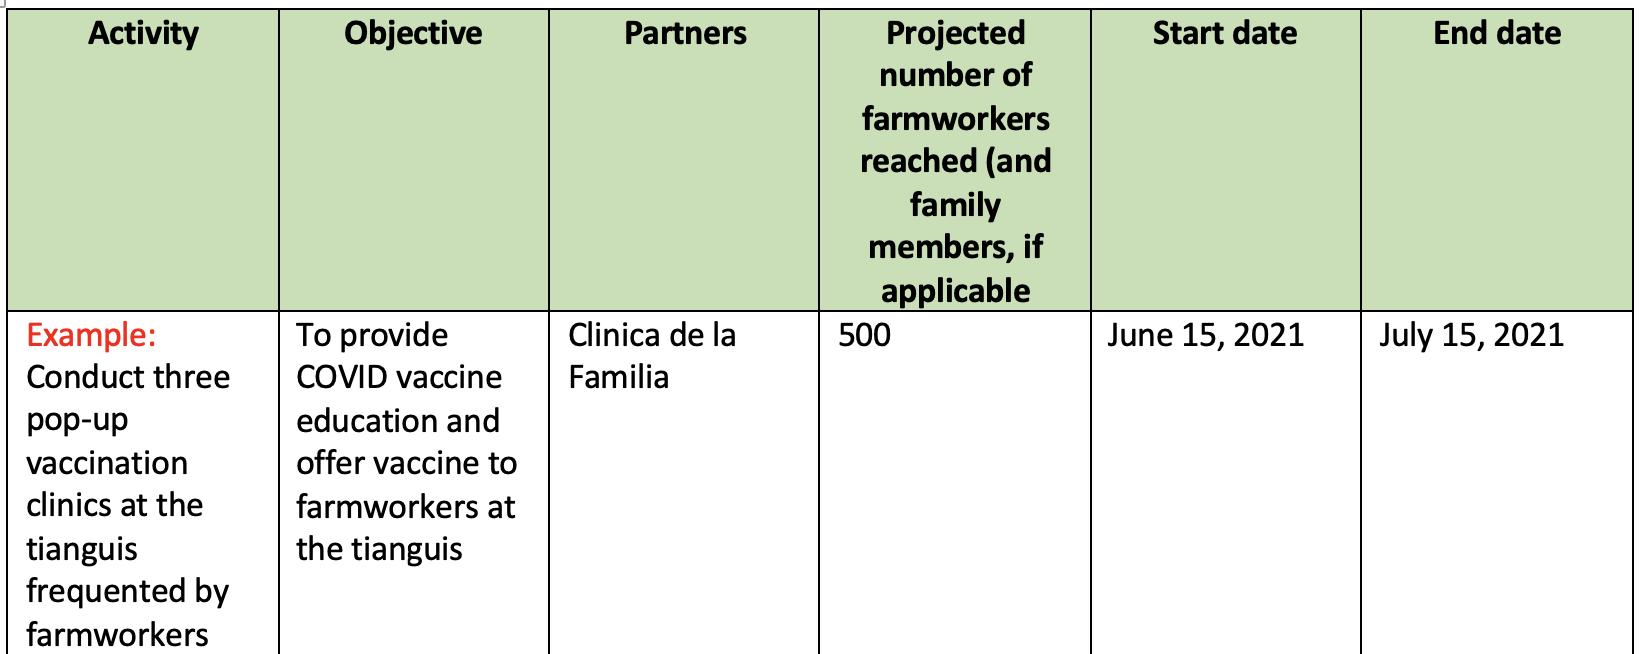 Please use the workplan template to complete the required workplan information.